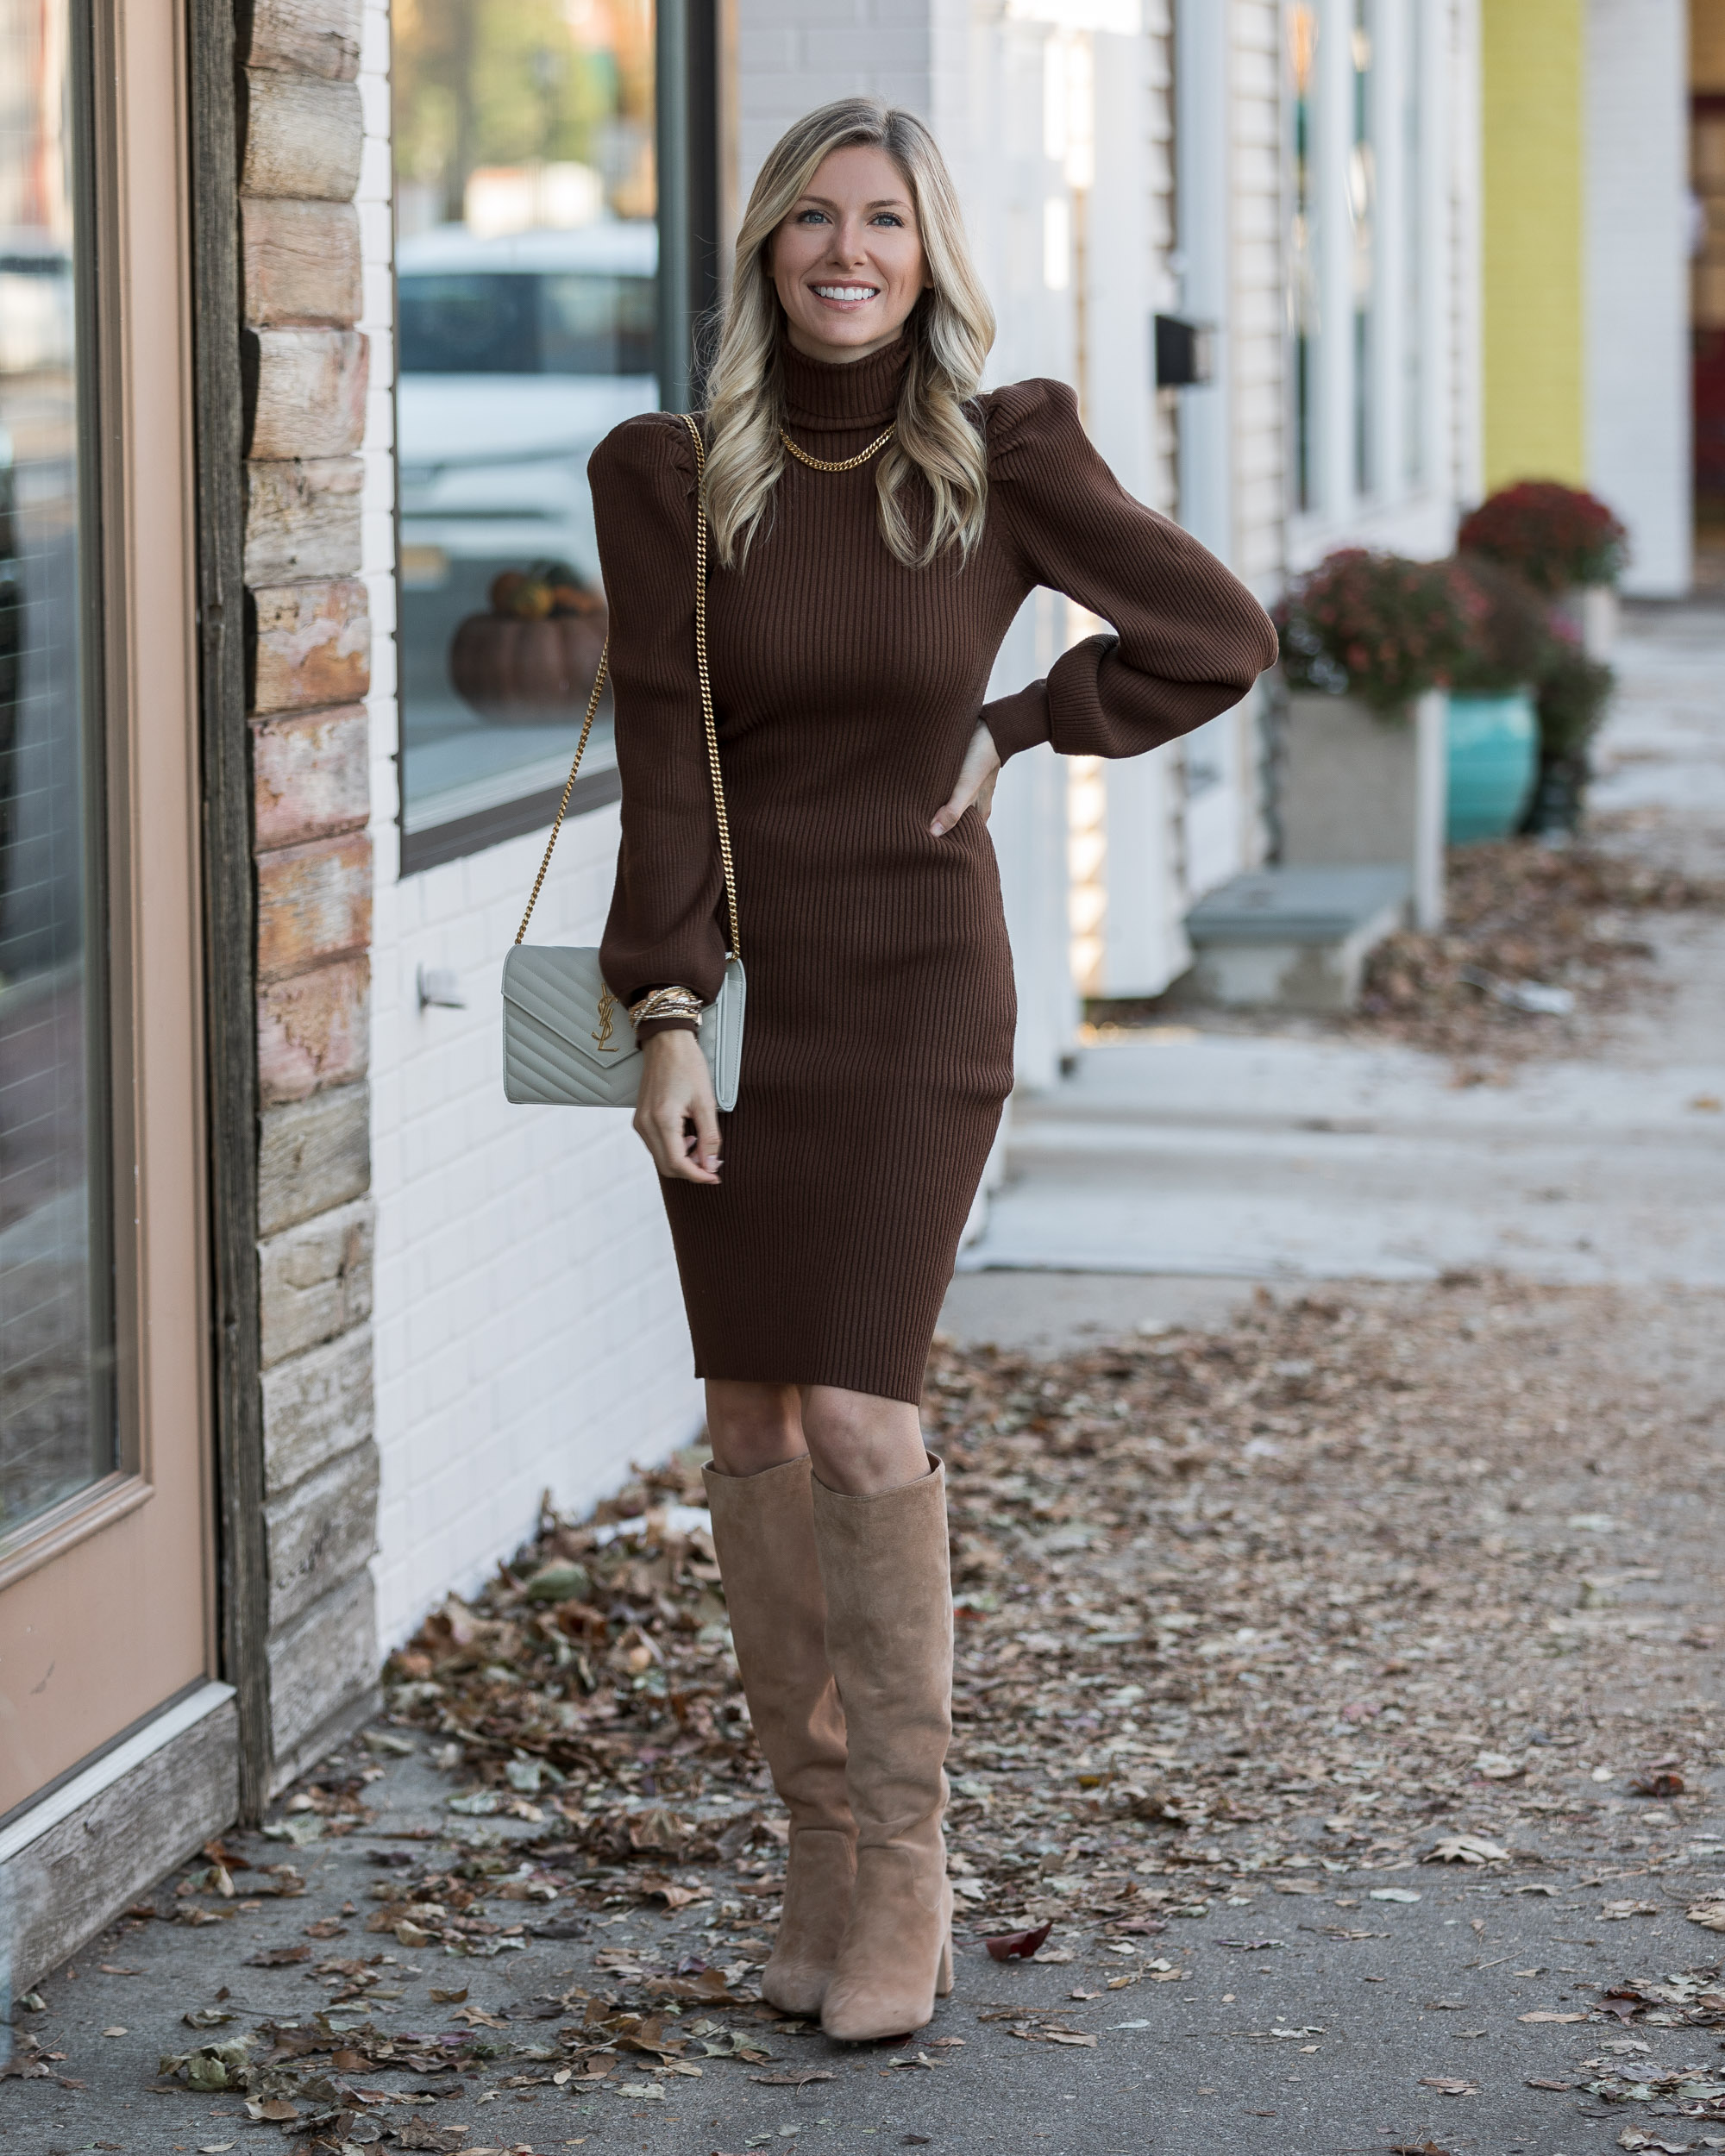 sweater-dress-and-over-the-knee-boots-for-thanksgiving-the-glamorous-gal